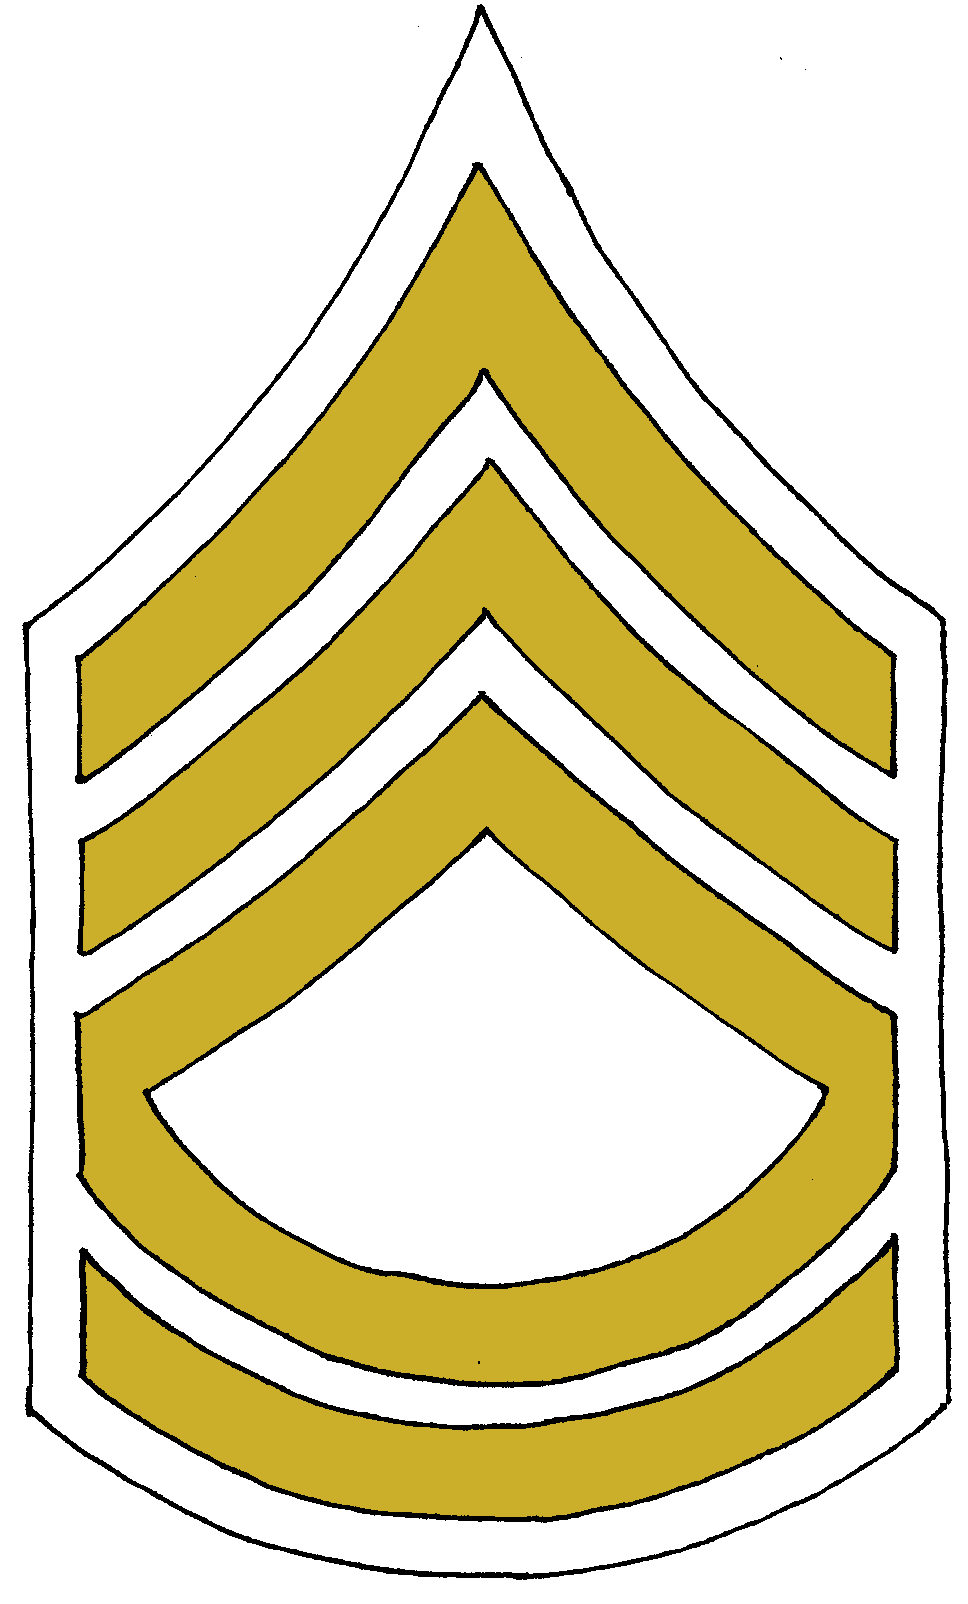 Sergeant Major Chevron Staff Sergeant Master Sergeant PNG, Clipart, Angle,  Black And White, Corporal, Drill Instructor,